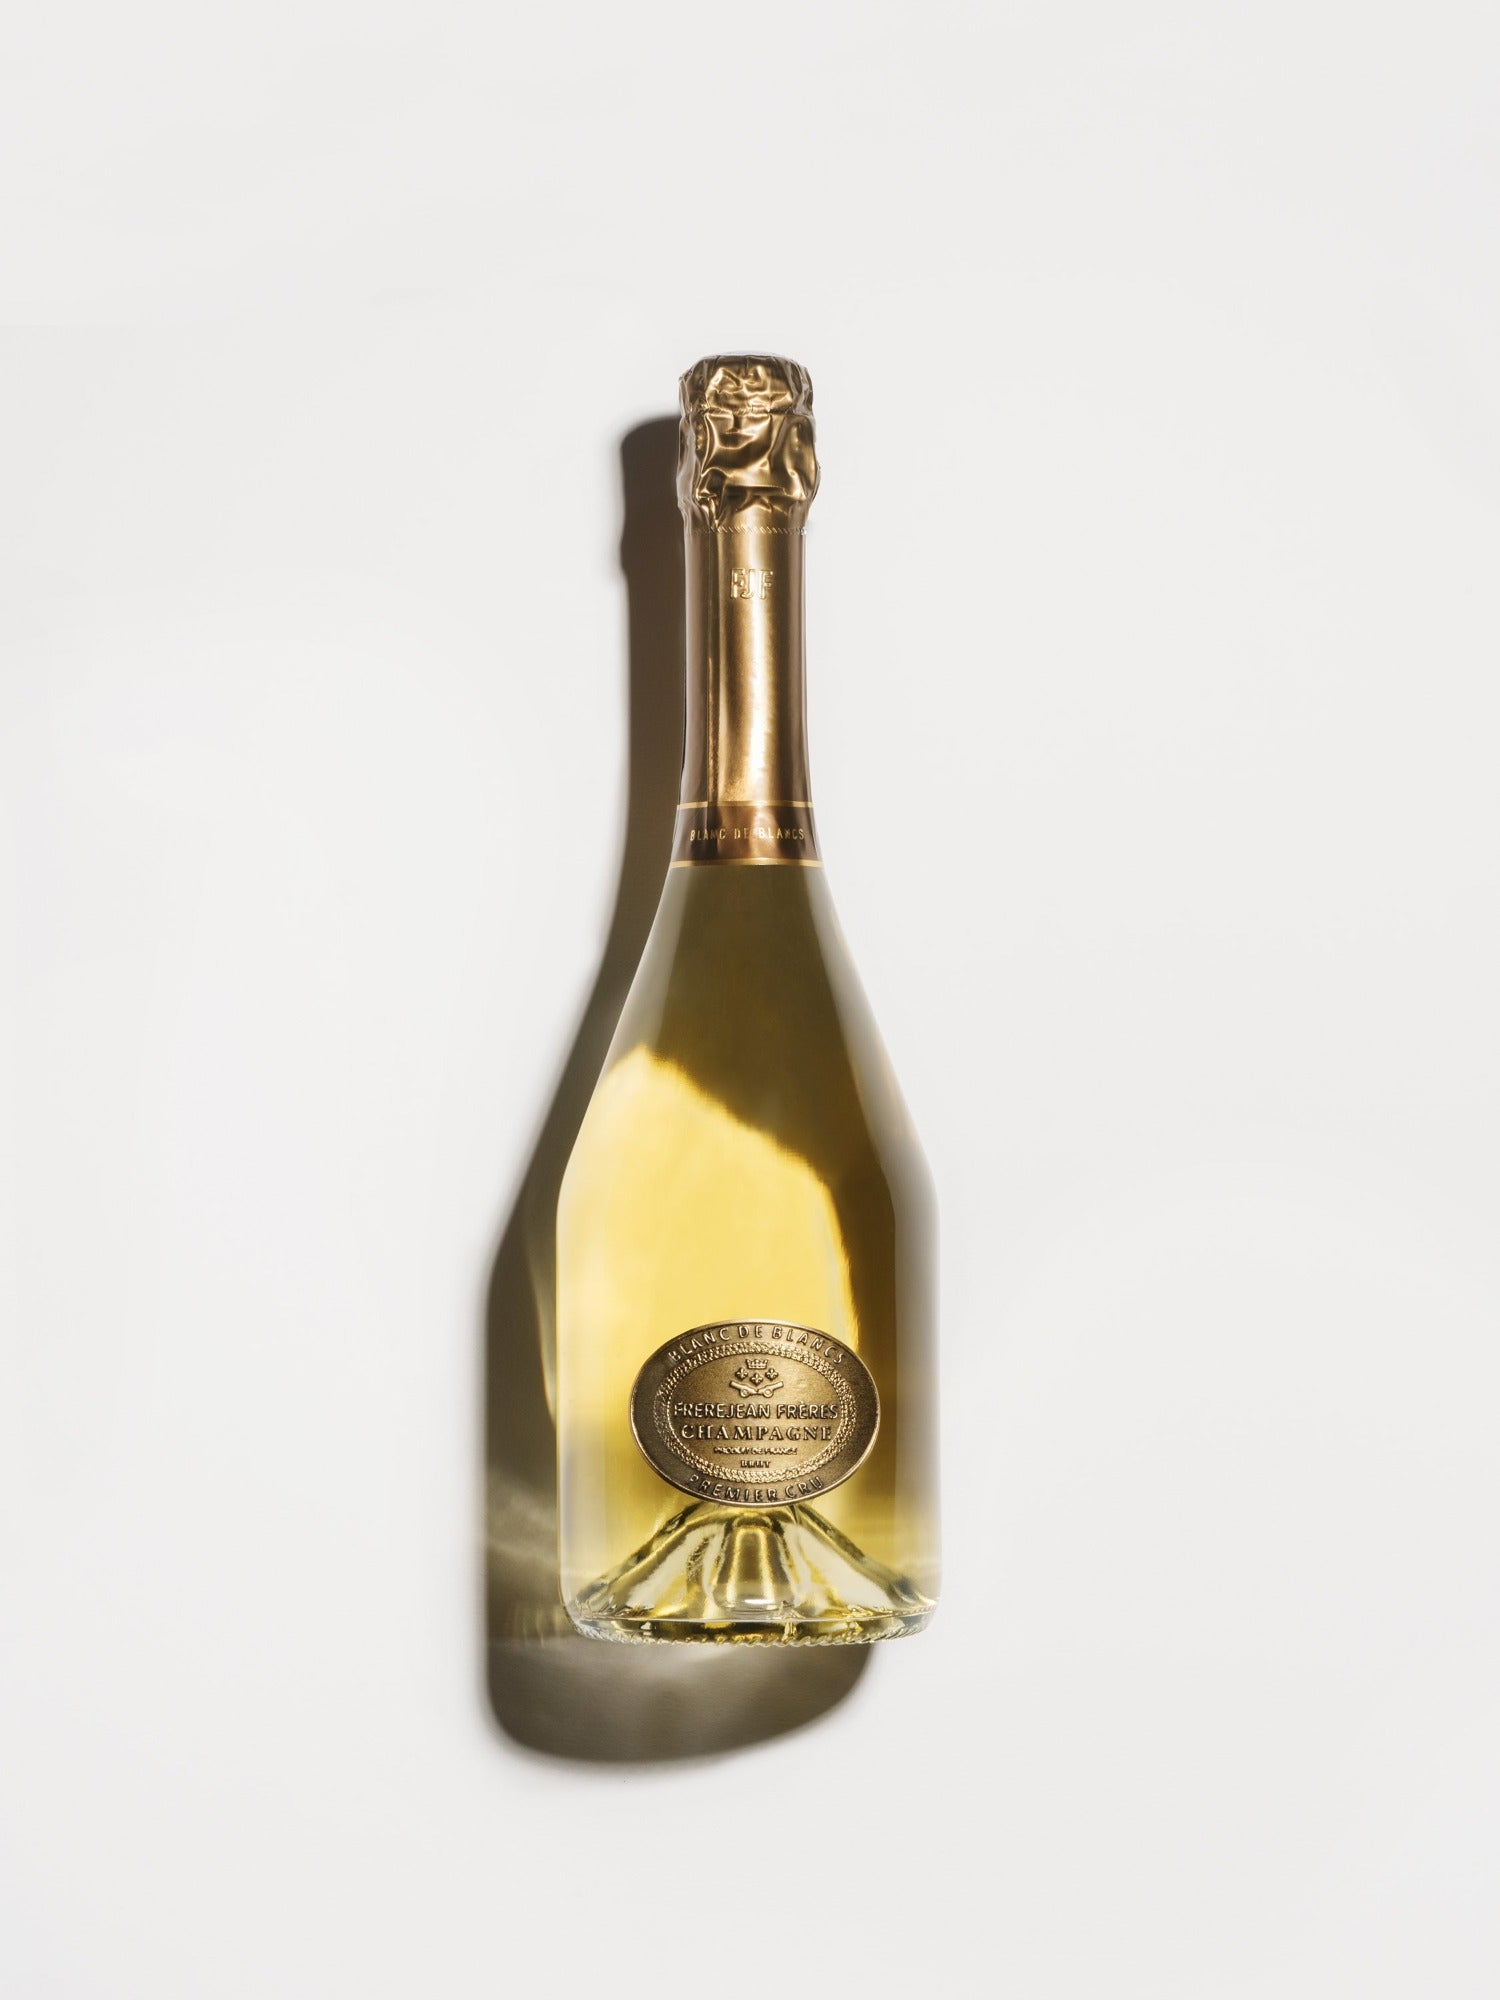 These are the most beautiful champagne bottles for a wedding